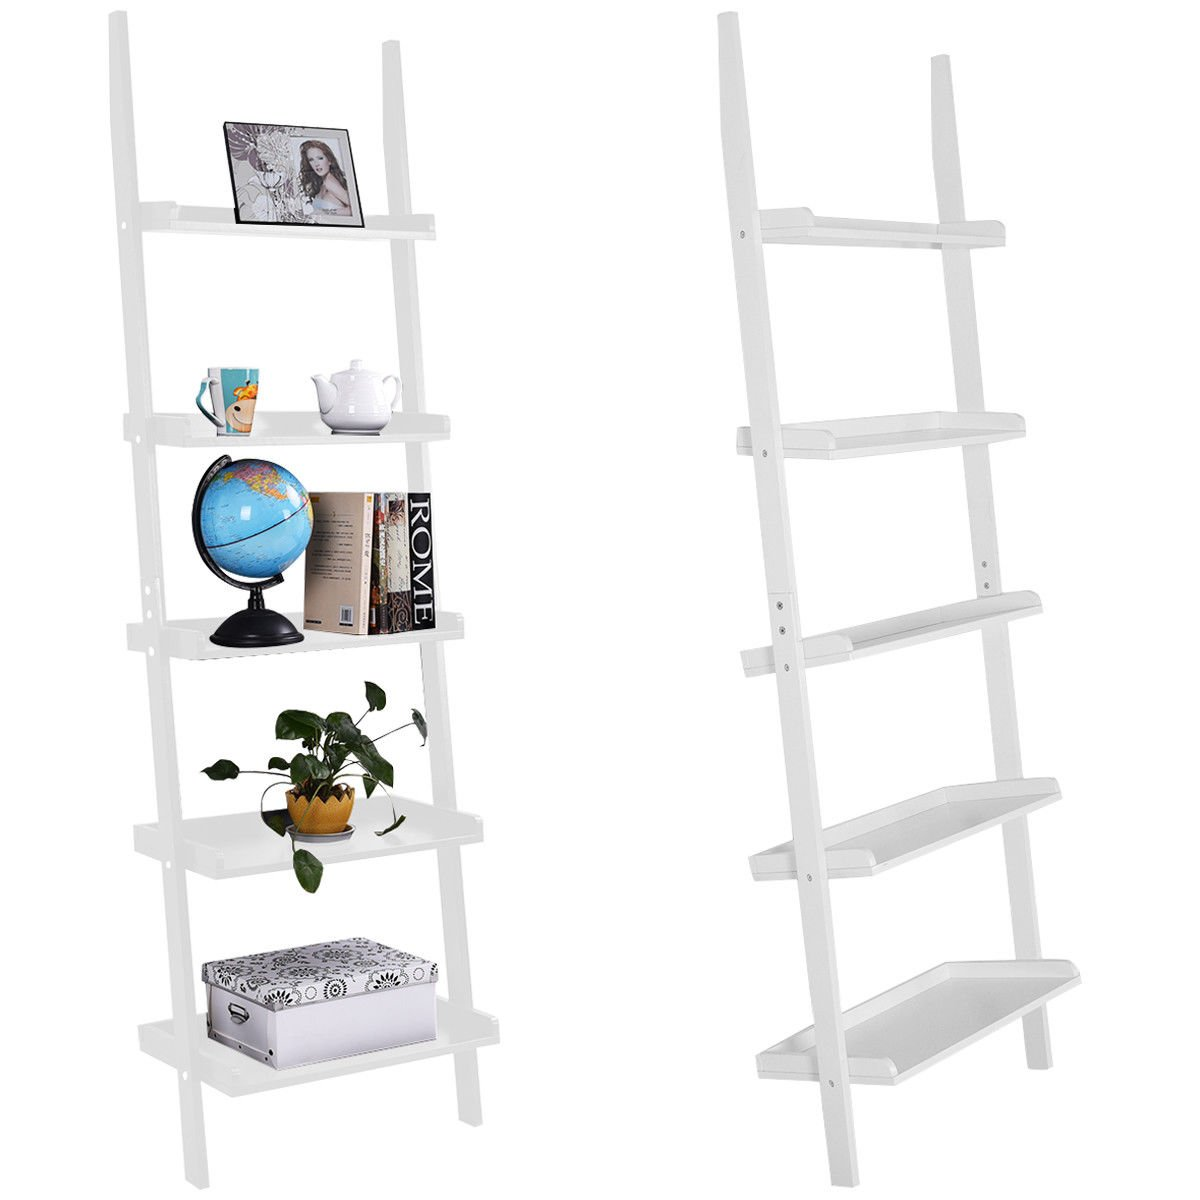 TANGKULA Ladder Bookcase 5-Tire Wood Leaning Shelf for Home Office Modern Flower Book Display Shelf Storage Rack Stable A-Frame Wooden Ladder Shelf